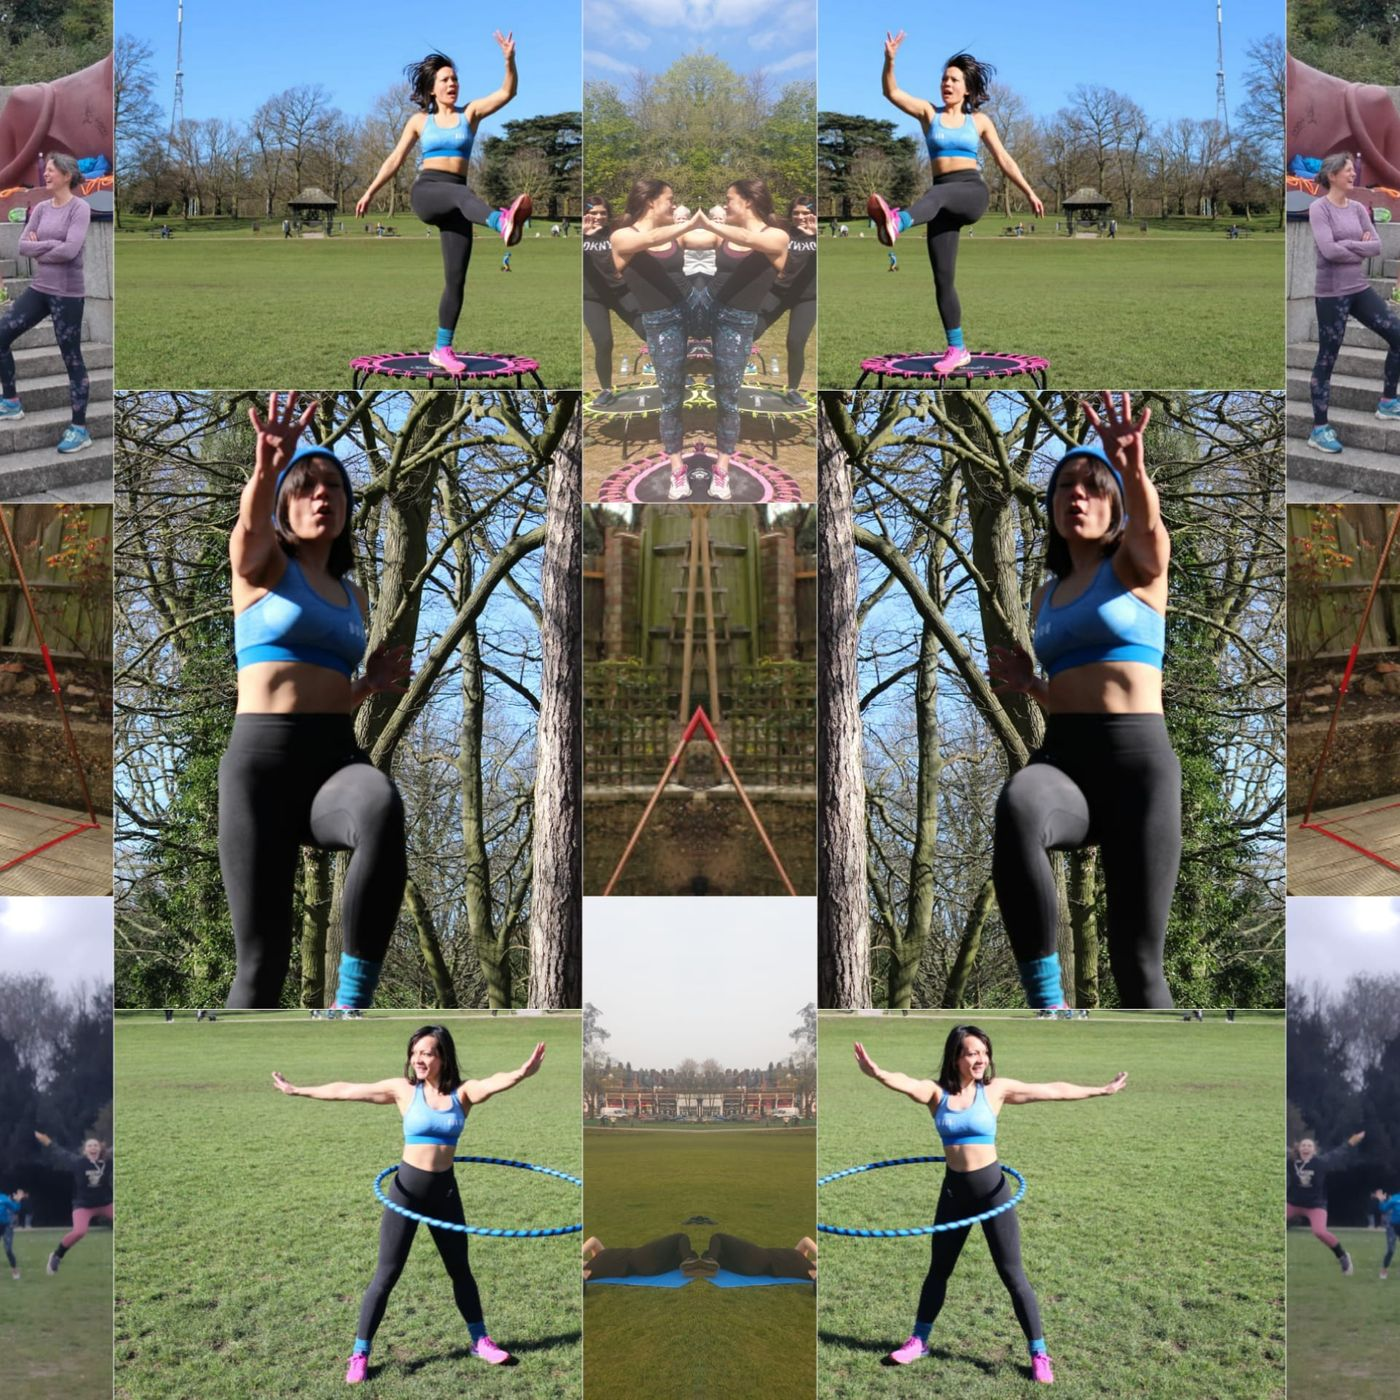 Can you do the DOUBLE??? 🤸♀️🤸♀️ For the WHOLE of May, book into 2 of my back to back classes and I'll give you a class credit back for the 2nd class. Choose from [Bouncing](/classes/pmaxderxKPRp) followed by [Bodyweight Workshop](/classes/frZODagaJfvh) on Thursdays or [Step Challenge](/classes/wgelPxJ2hJBR) followed by [Core Blimey](/classes/qzpJyRnQUy41) on Saturdays. Not for the faint hearted!🤩💪